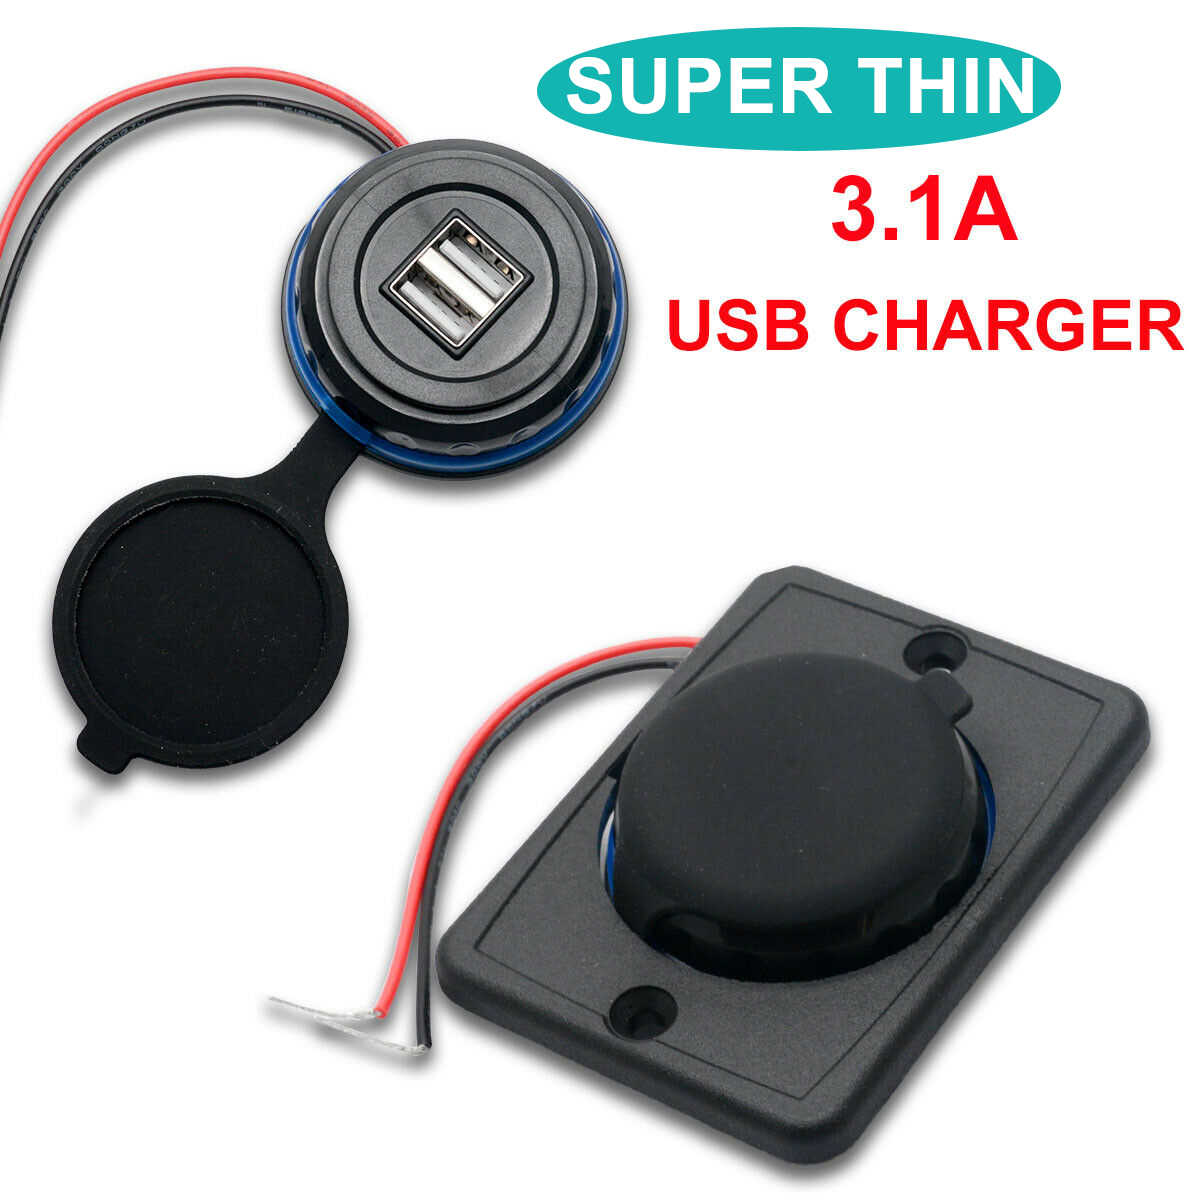 Mini 2 Port USB Charger 12V Vehicle Power Socket 3.1A Outlet Adapter Panel For Car Boat Mobile Phones Bus Motorcycle